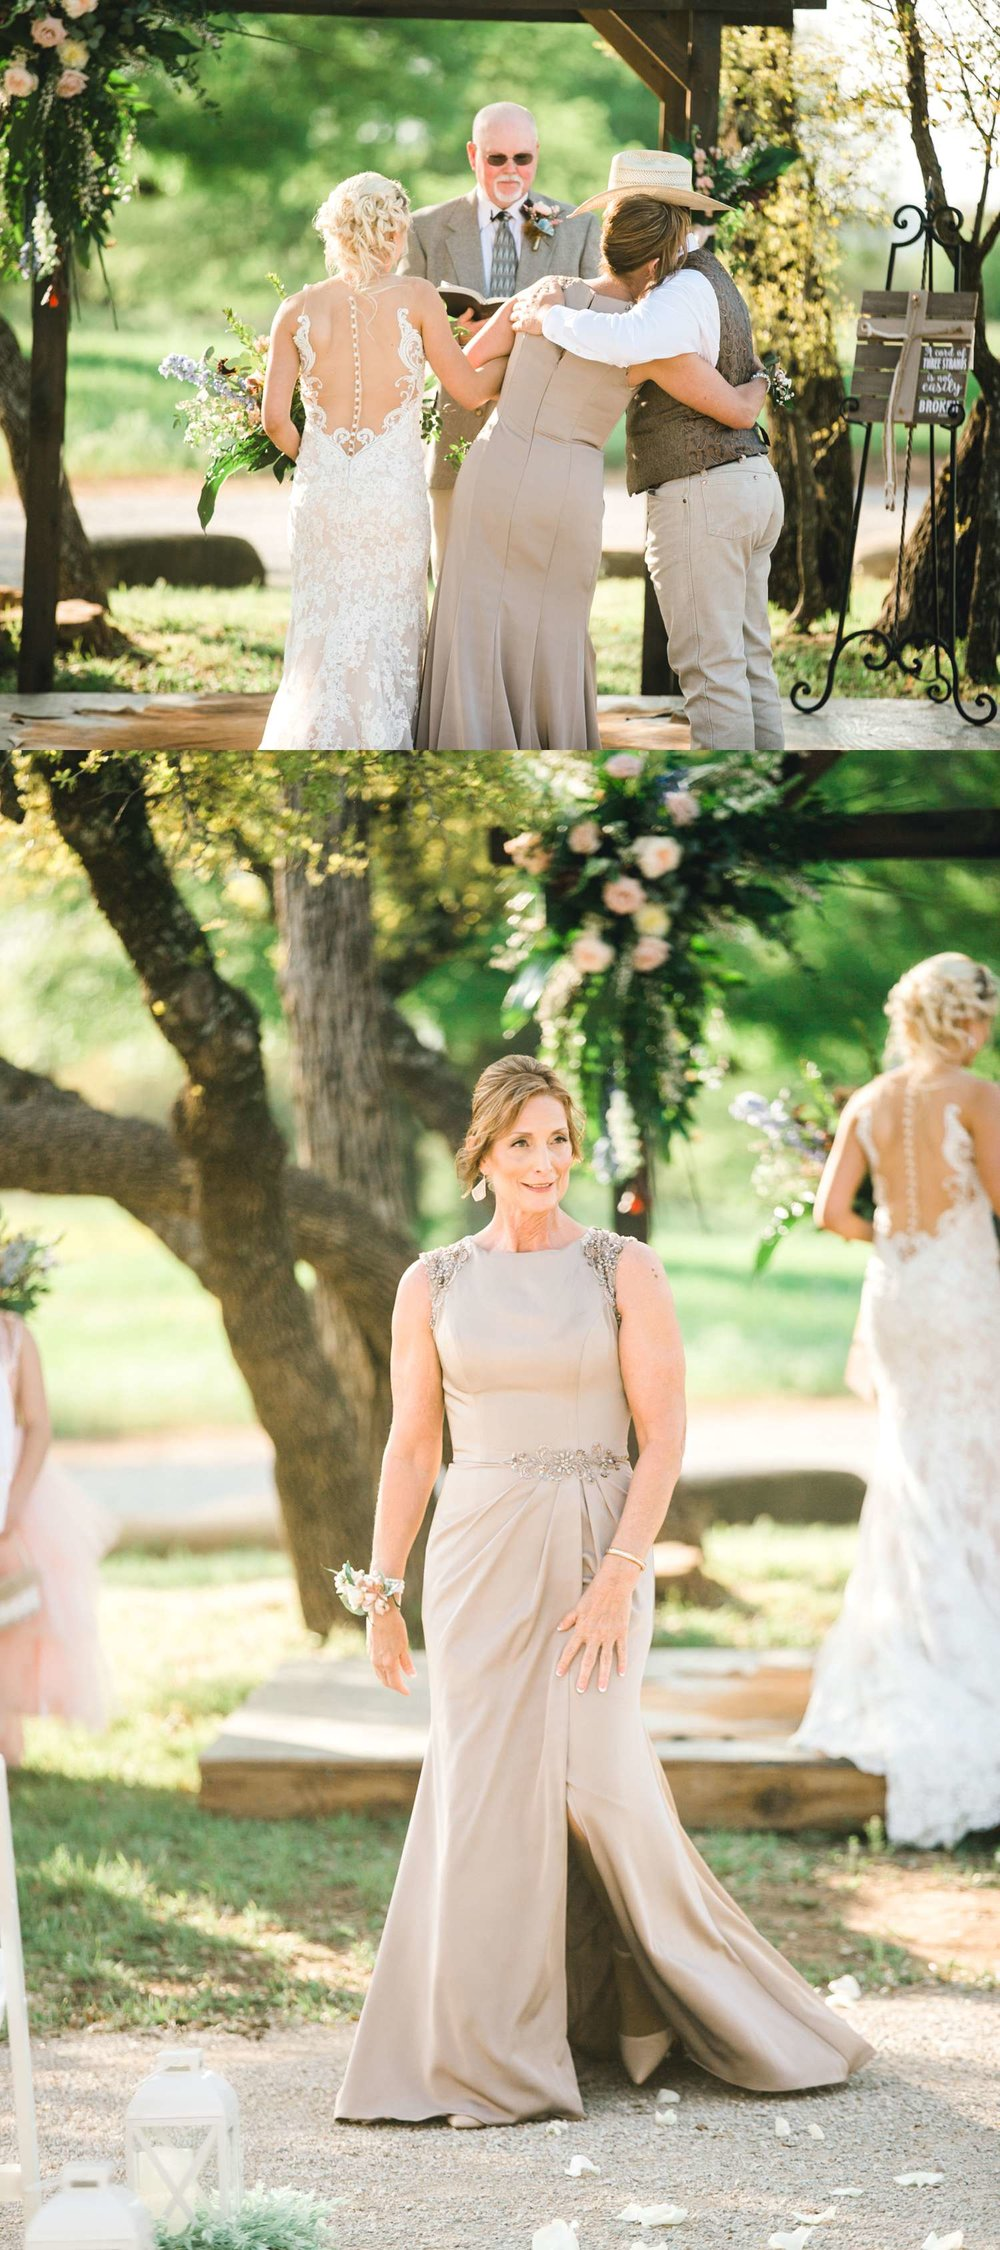 SARAH+TREVOR+BADGETT+SPARROW+CREEK+GRAHAM+TEXAS+ALLEEJ+WEDDINGS_0058.jpg